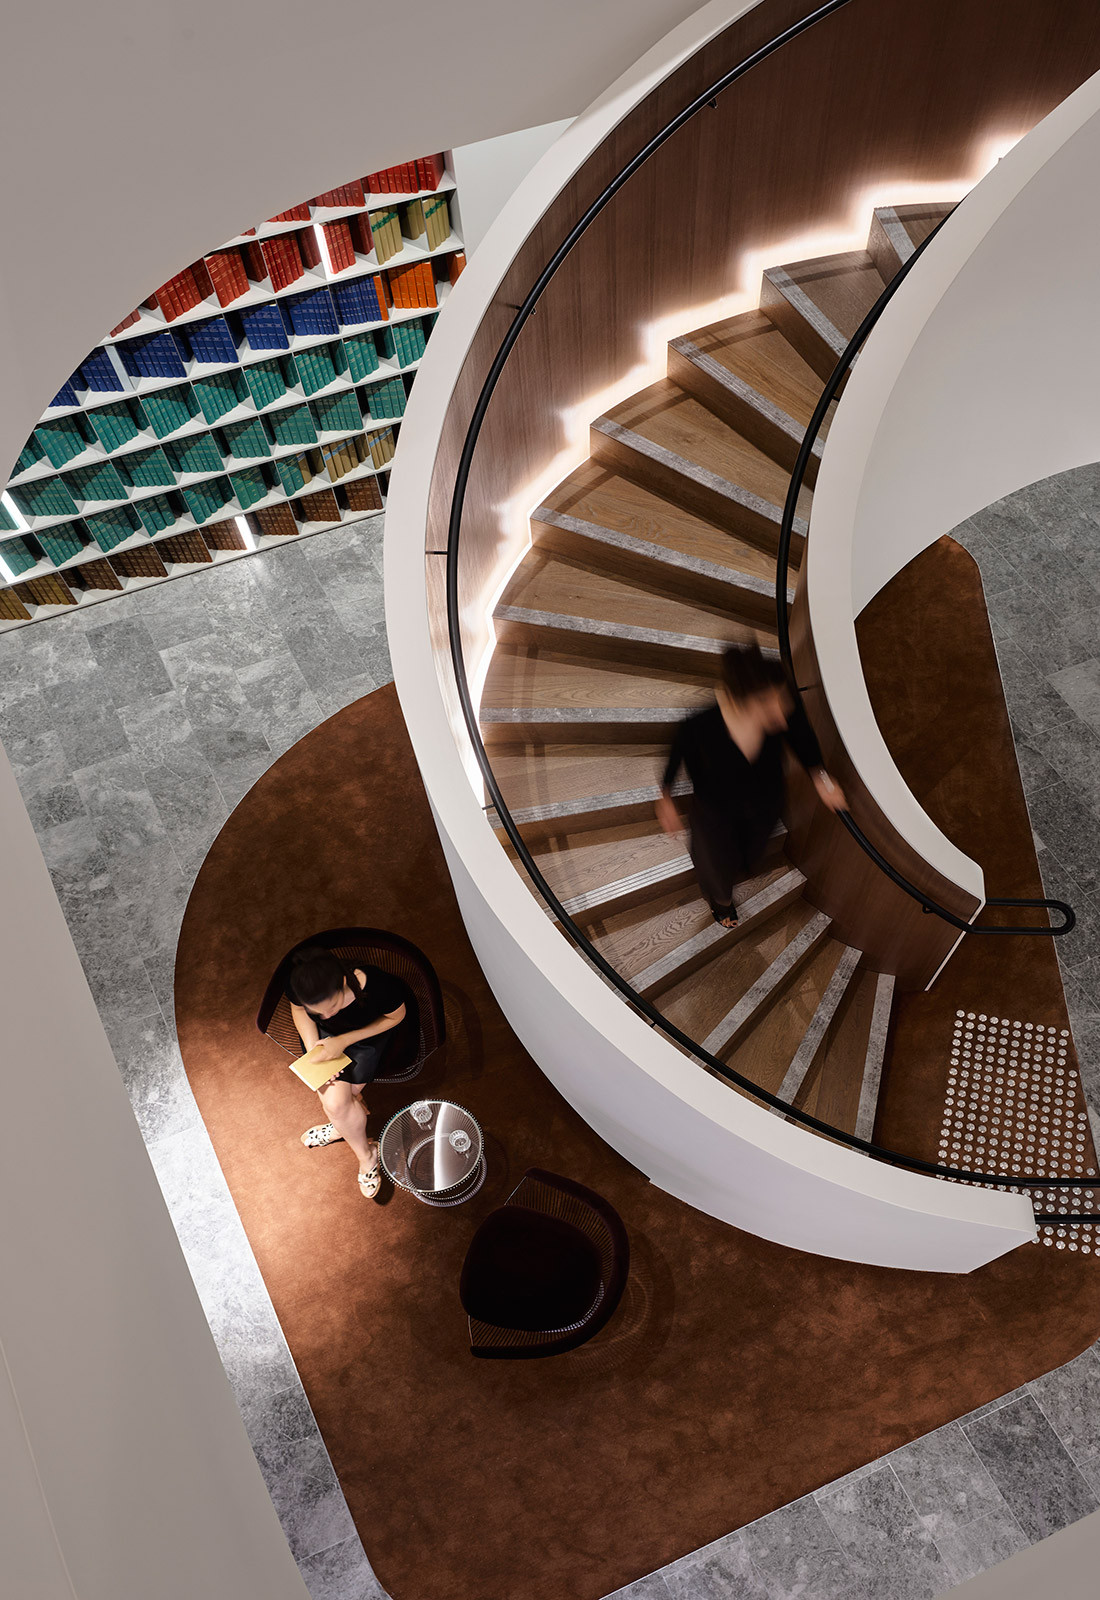 Spiral staircase in Banco Chambers Martin Place office fitout, designed by Bates Smart